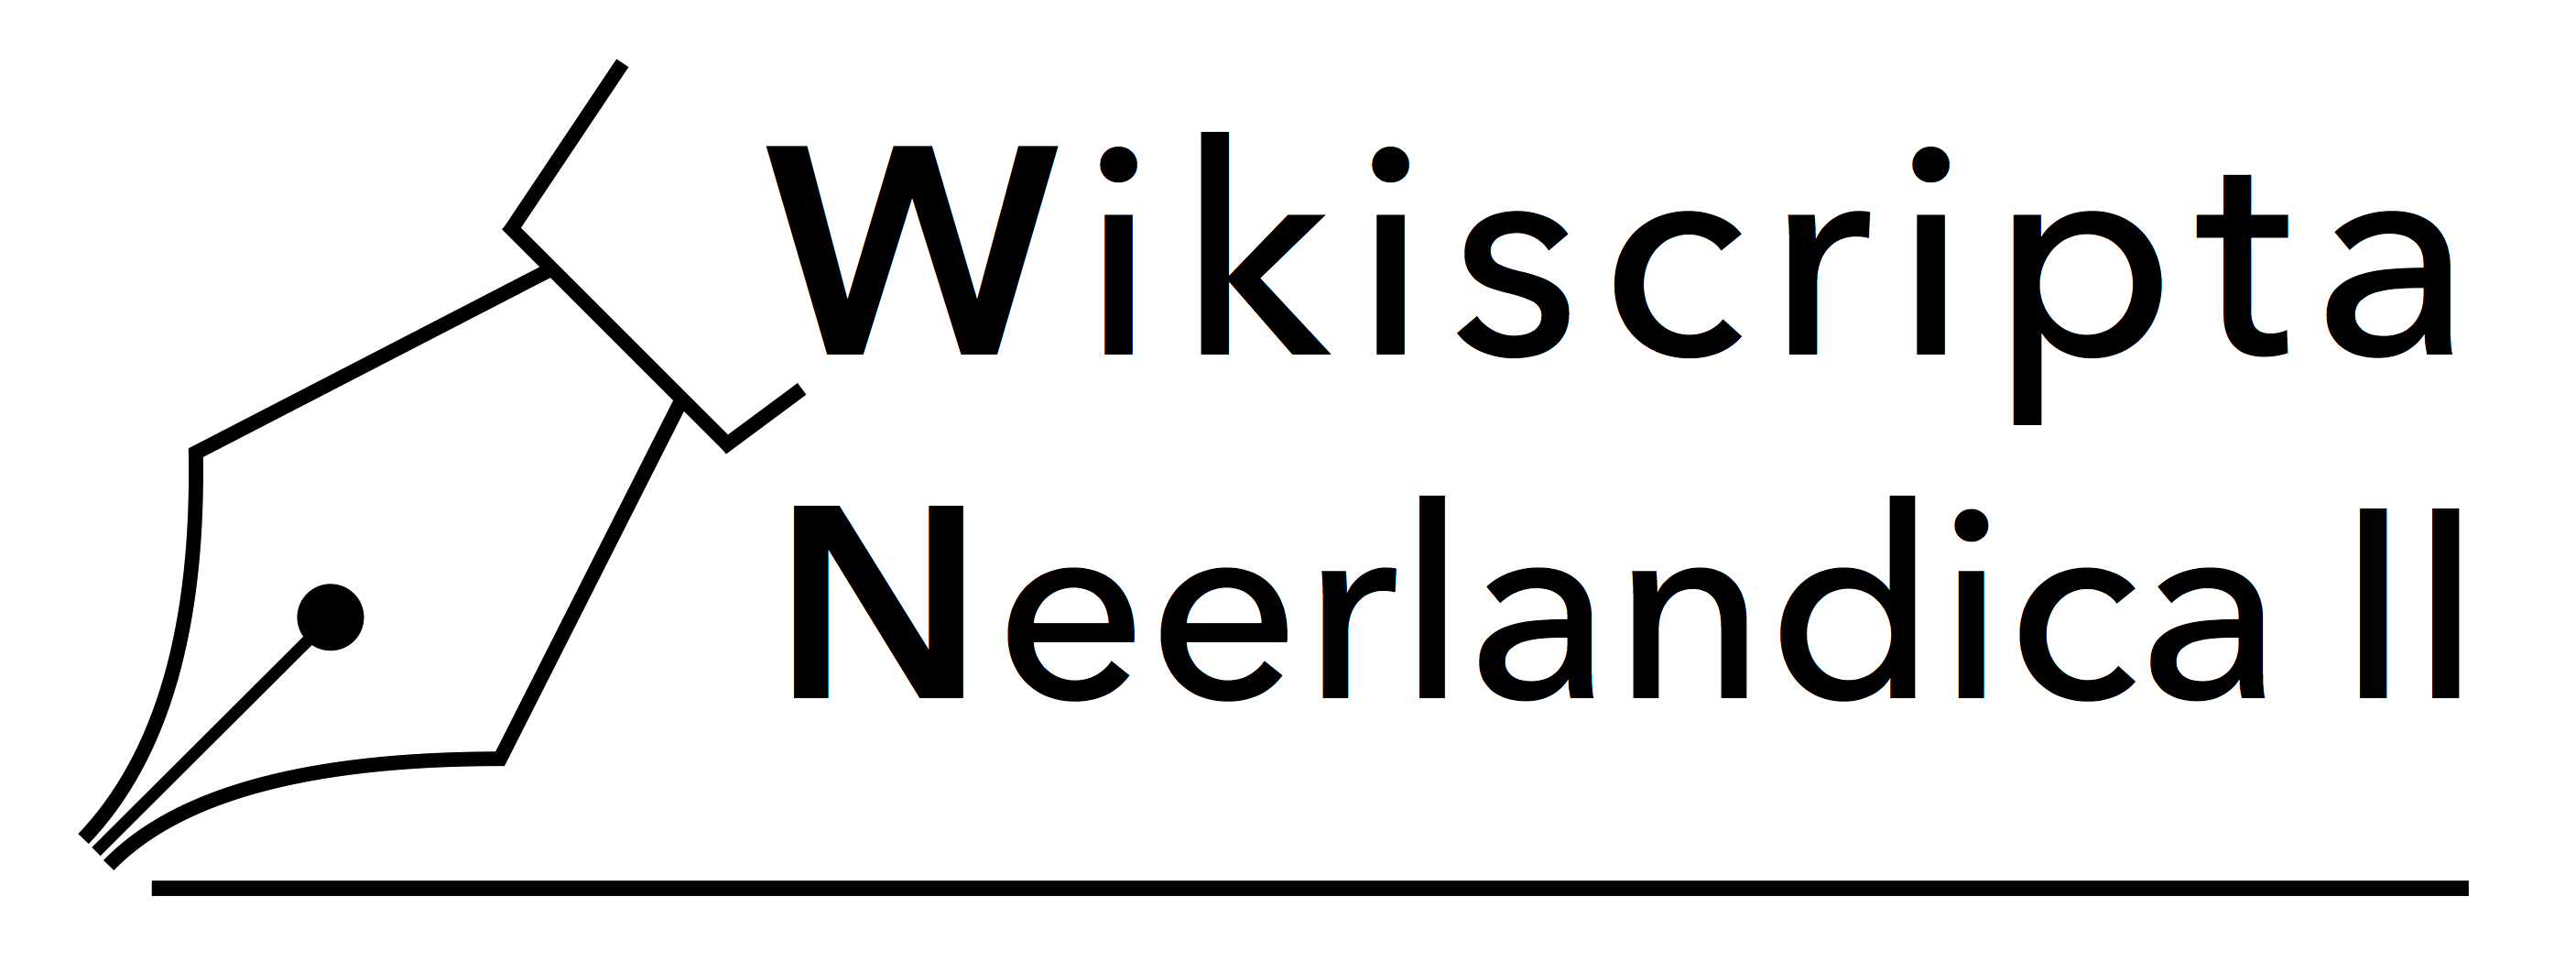 wikiscripta - logo (breed)